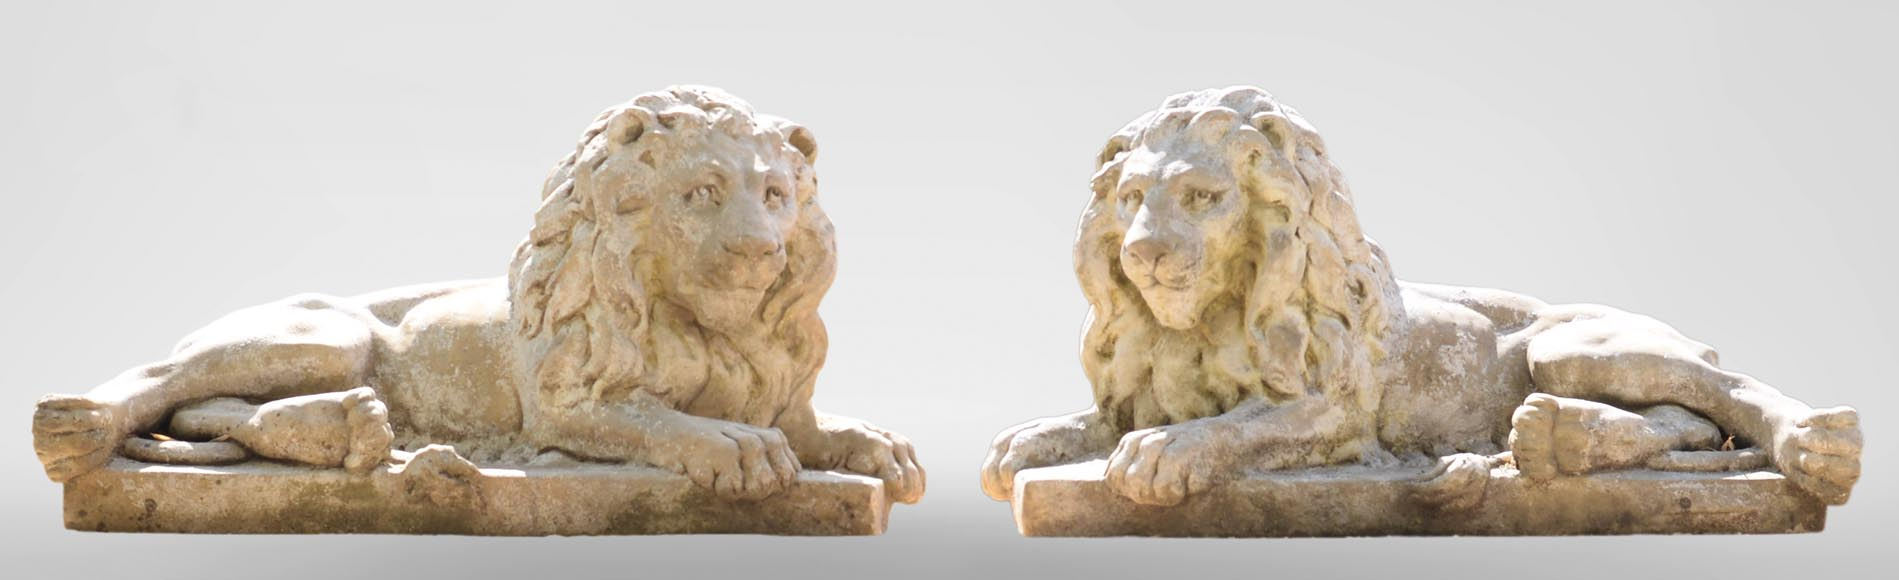 Important pair of statues with majestic lions made of composit stone-0